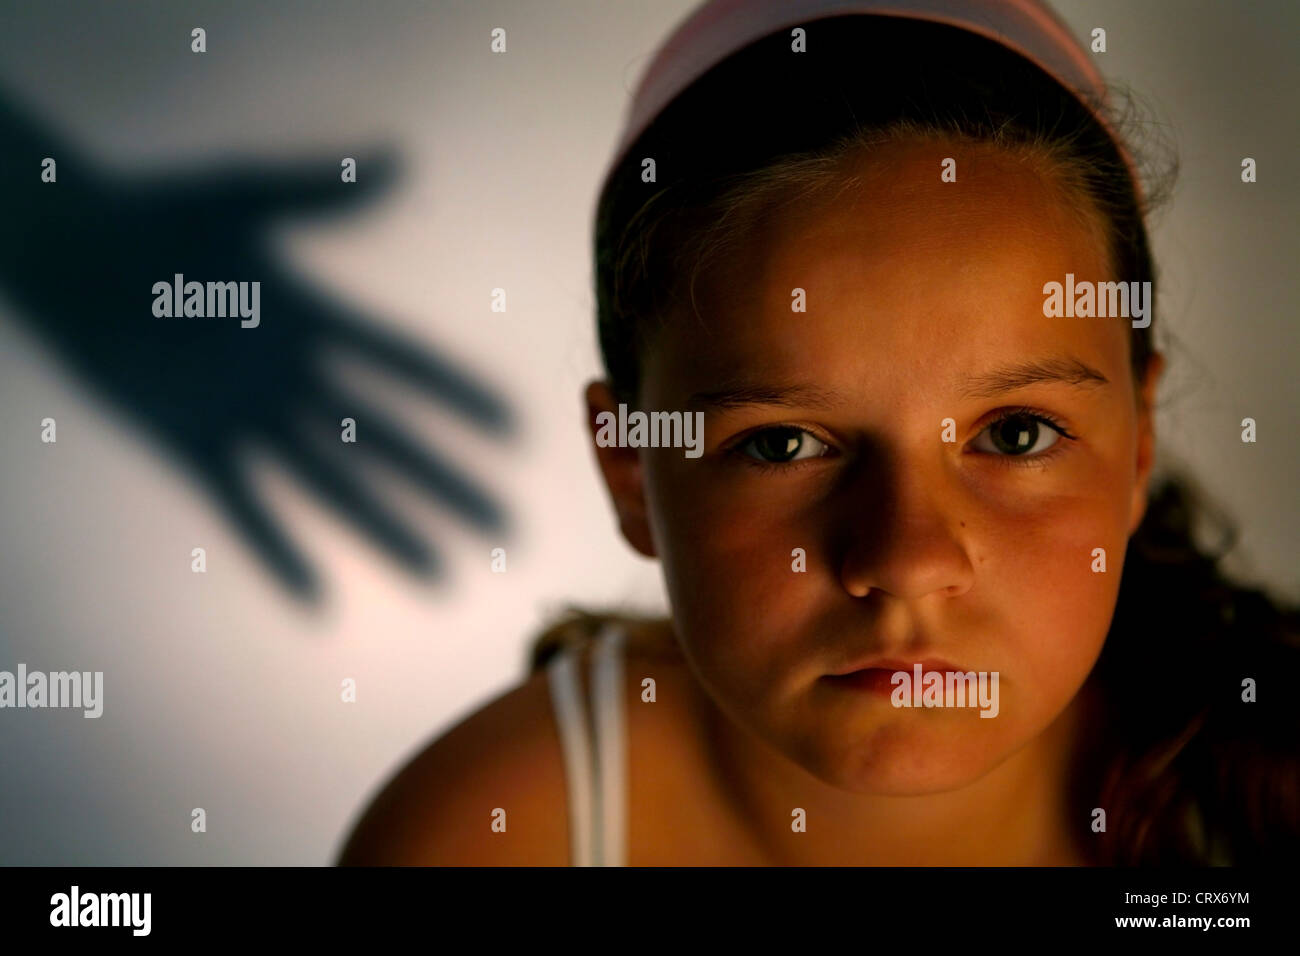 A young girl cowering away from her attacker. - Stock Image